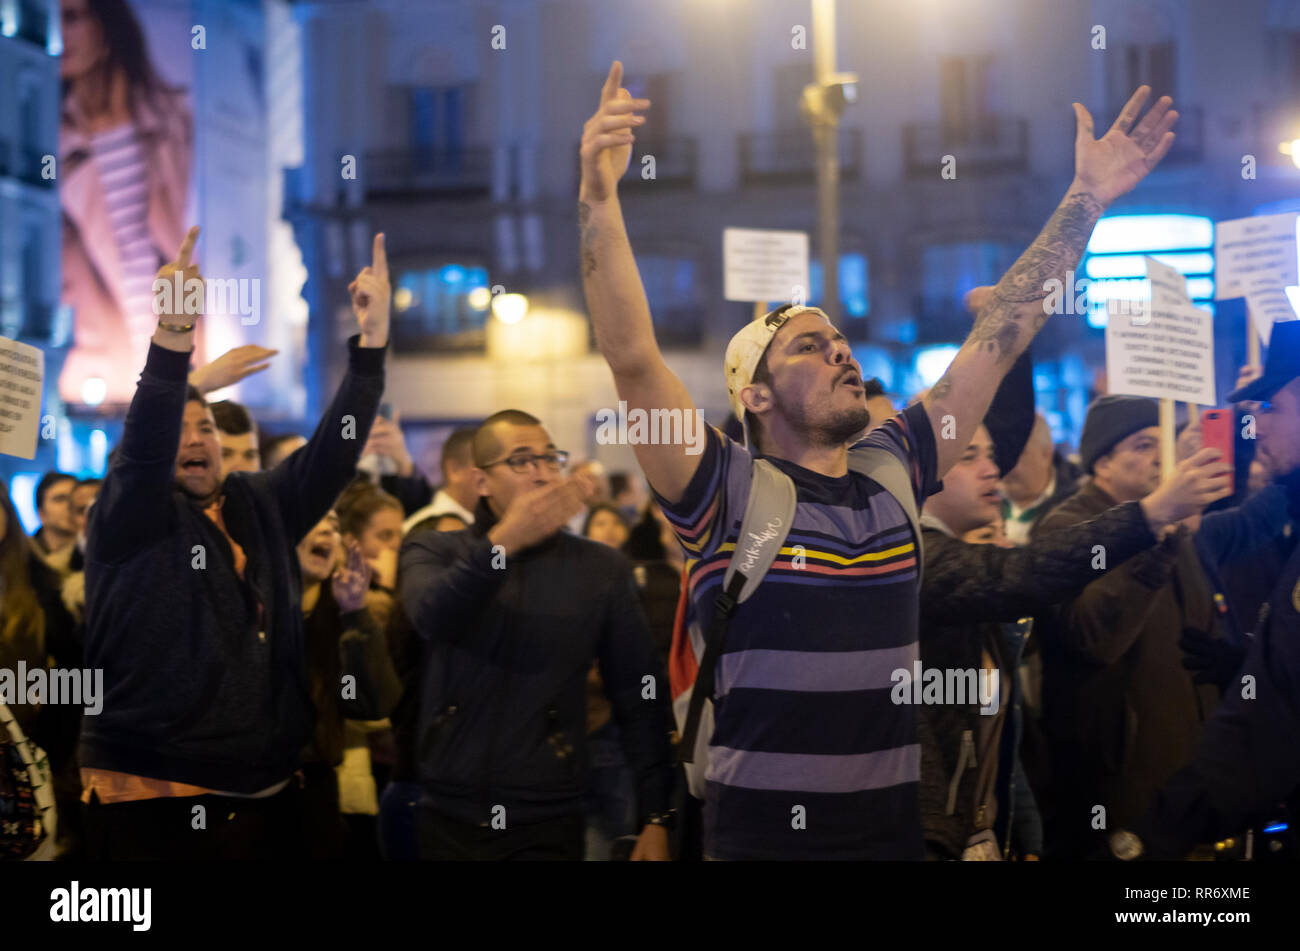 Madrid, Spain. 24th Feb, 2019. Clashes between supporters of Maduro and the opposition took place in Madrid. The origin of the dispute was a demonstration organized by the supporters of Maduro at Puerta del Sol to protest against the intervention of Spain in Venezuela. Venezuelan citizens of the opposition showed up and the intervention of the police was necesary to avoid any stronger confrontations between both parts.  In the picture, the opposition of Maduro protesting. Credit: Lora Grigorova/Alamy Live News - Stock Image